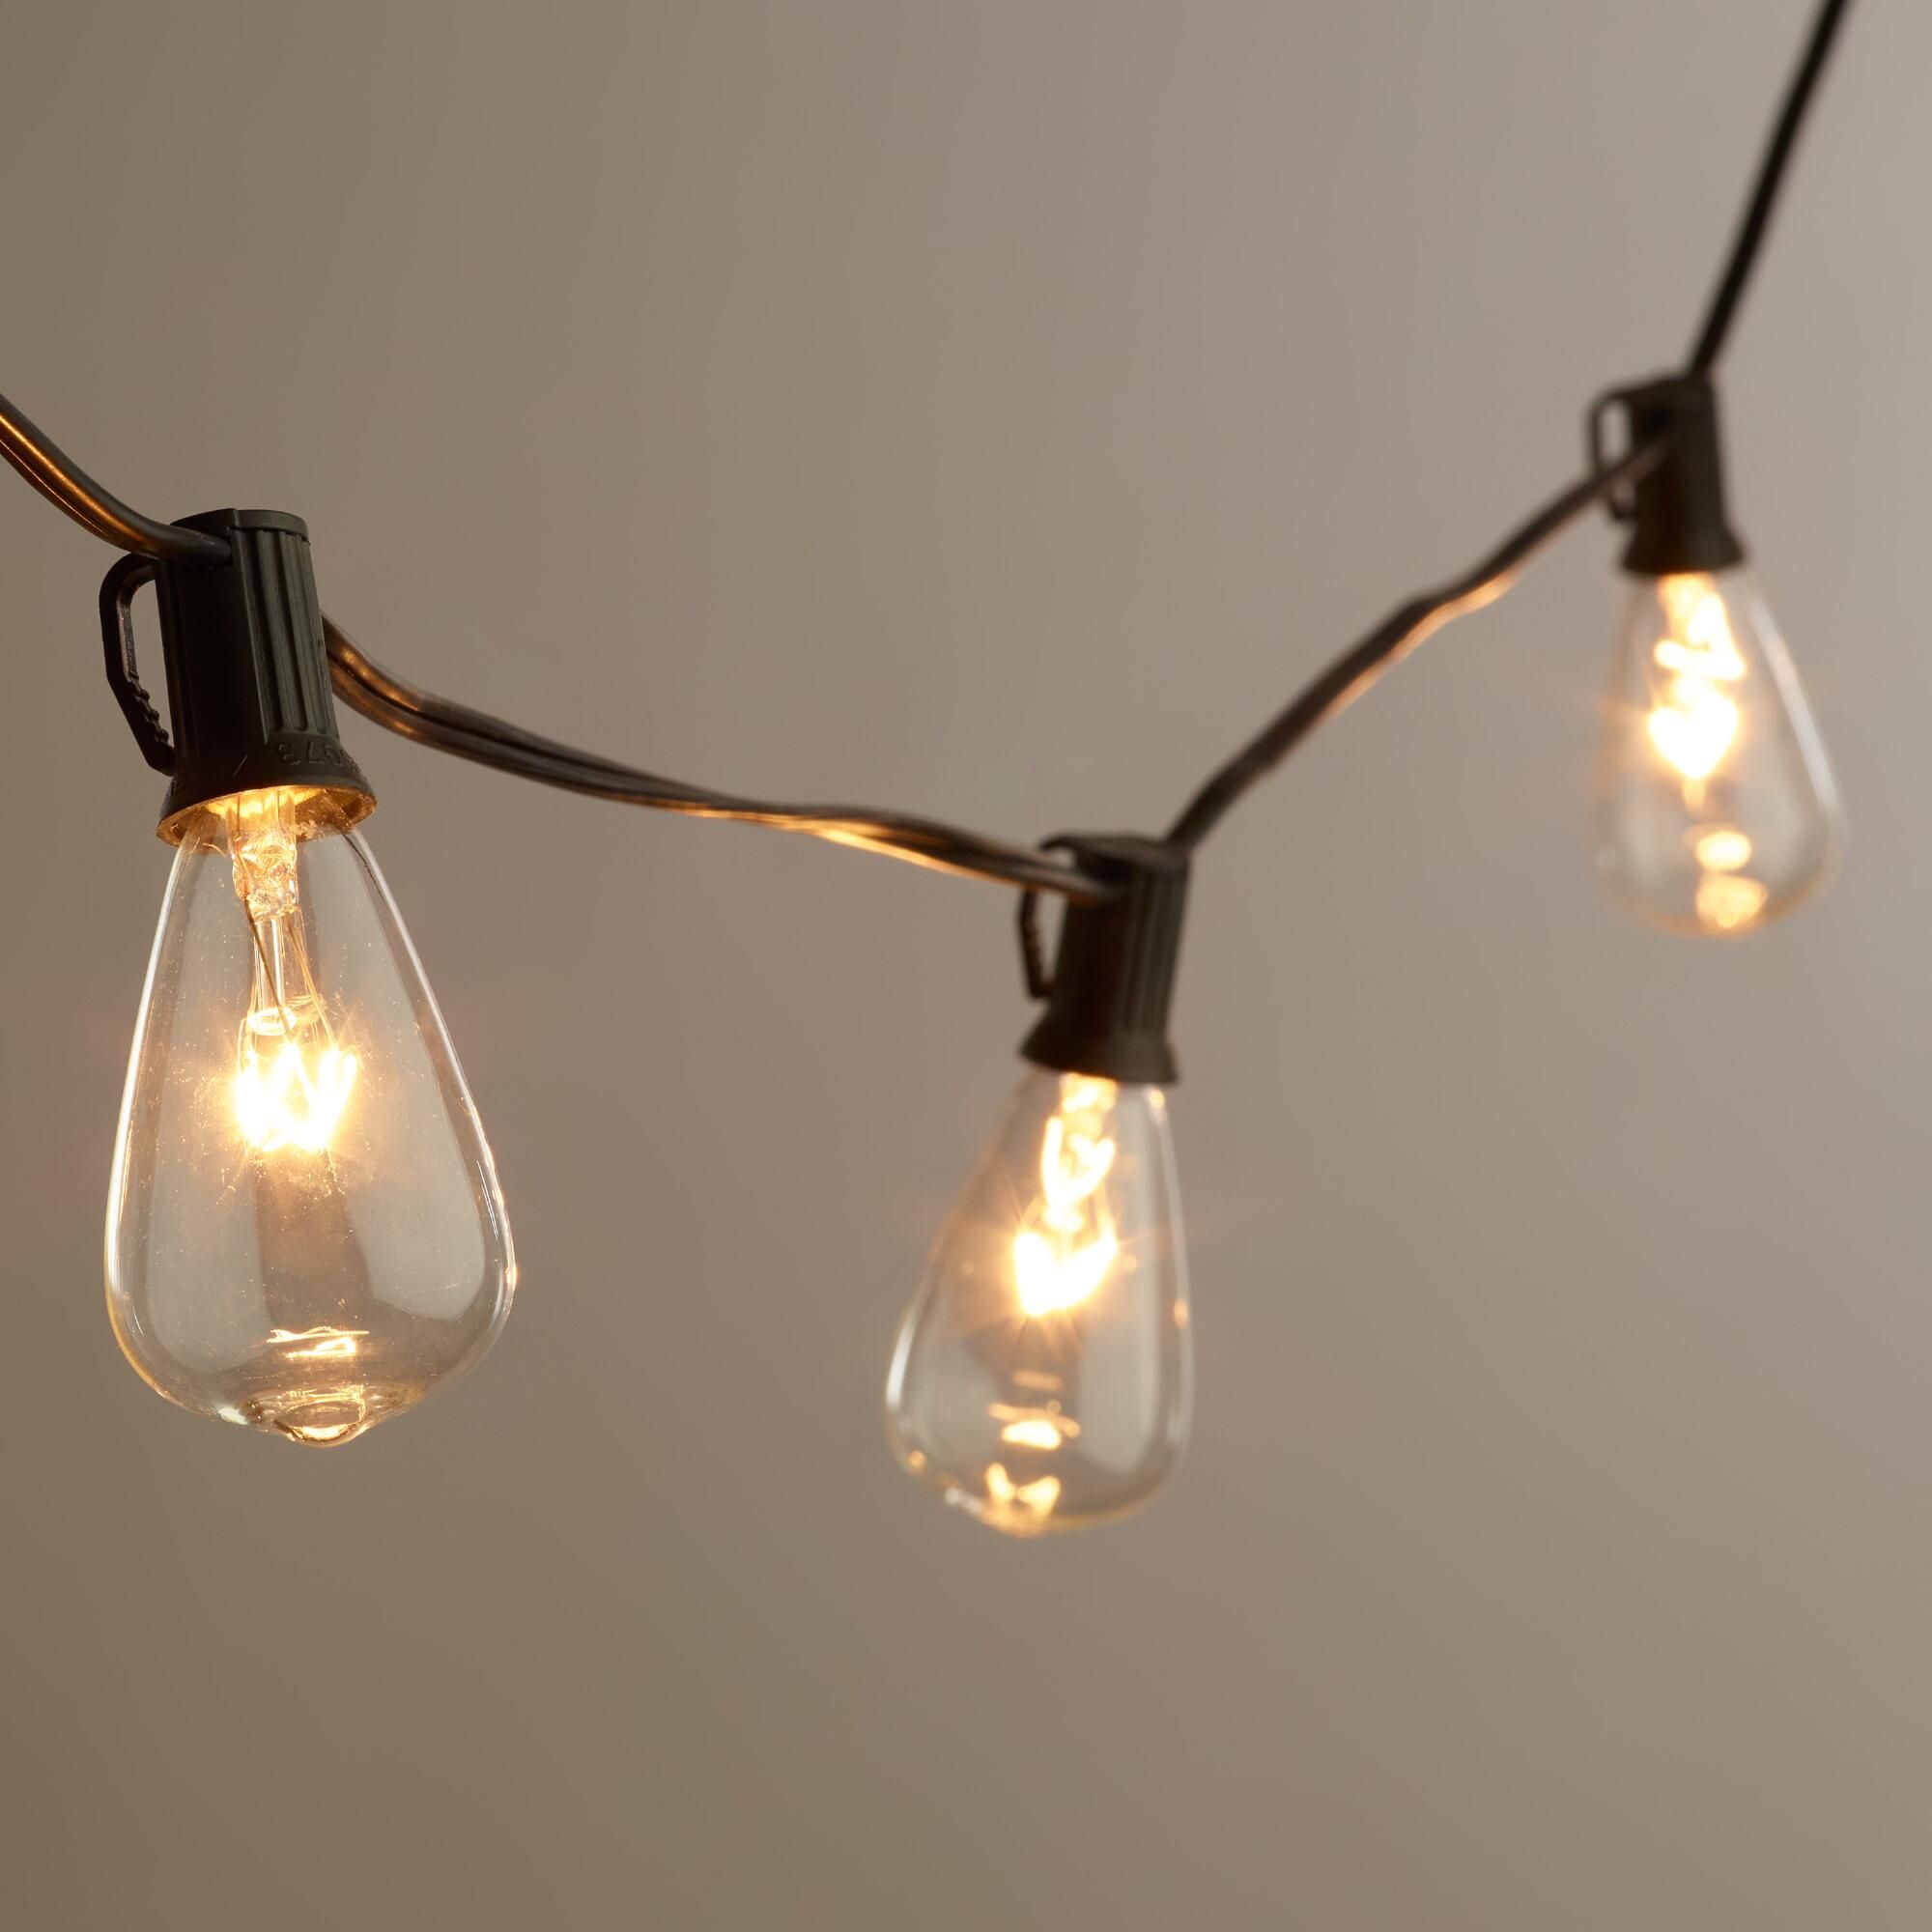 Replacement Bulbs For String Lights Delectable Inspiredthe Vintage Light Bulbs Inventedthomas Edison Our Design Ideas